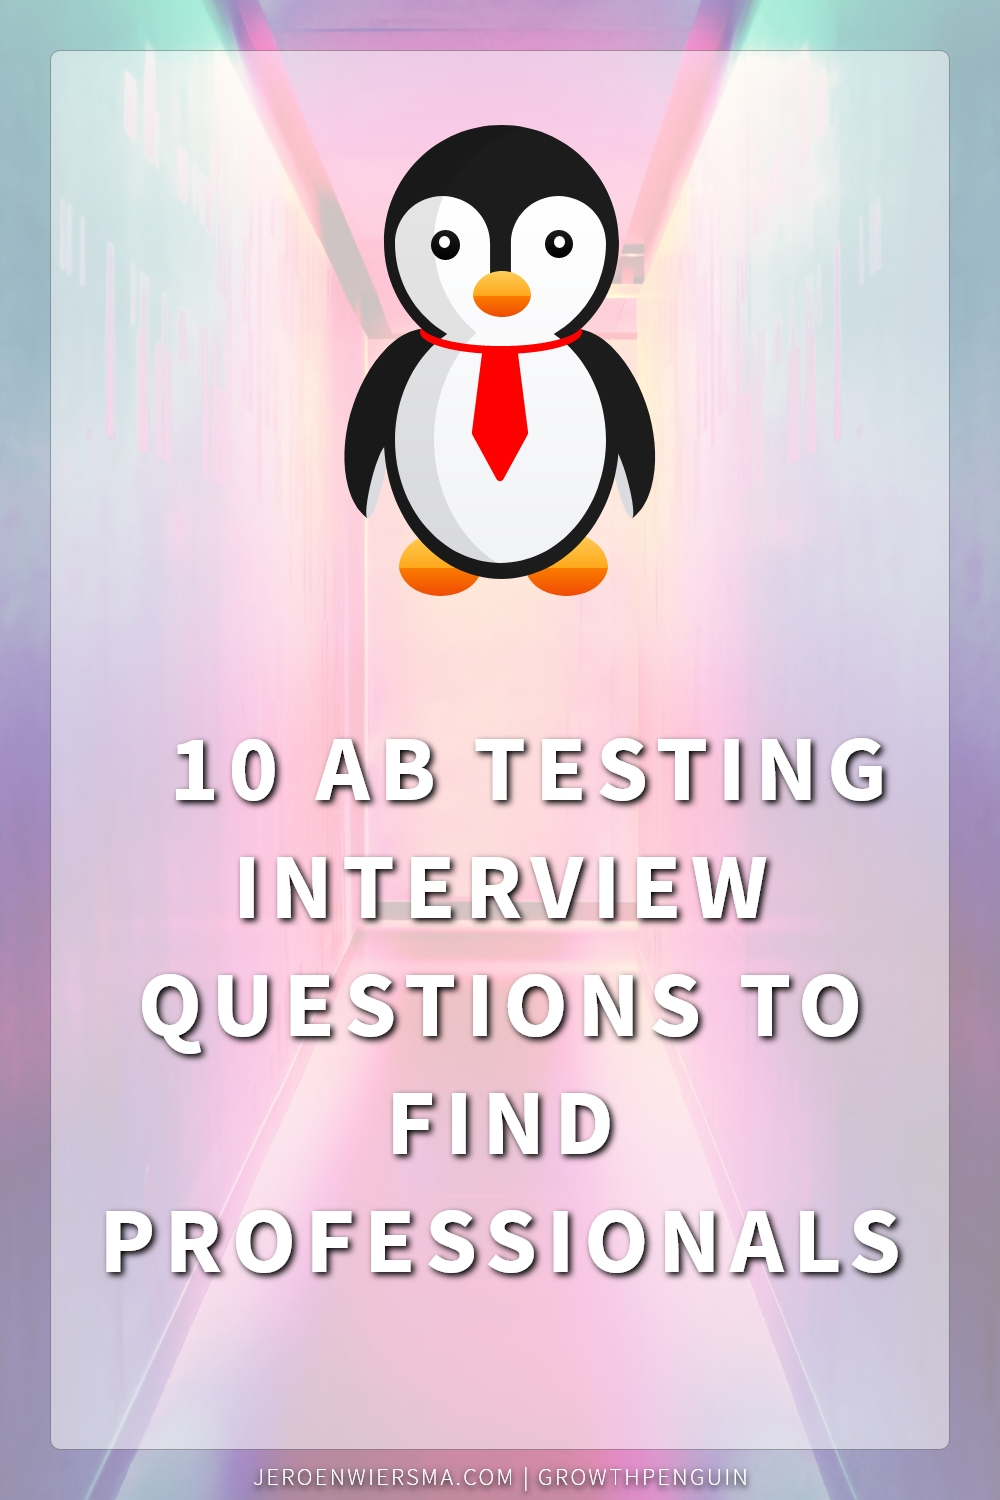 10 ab testing interview questions